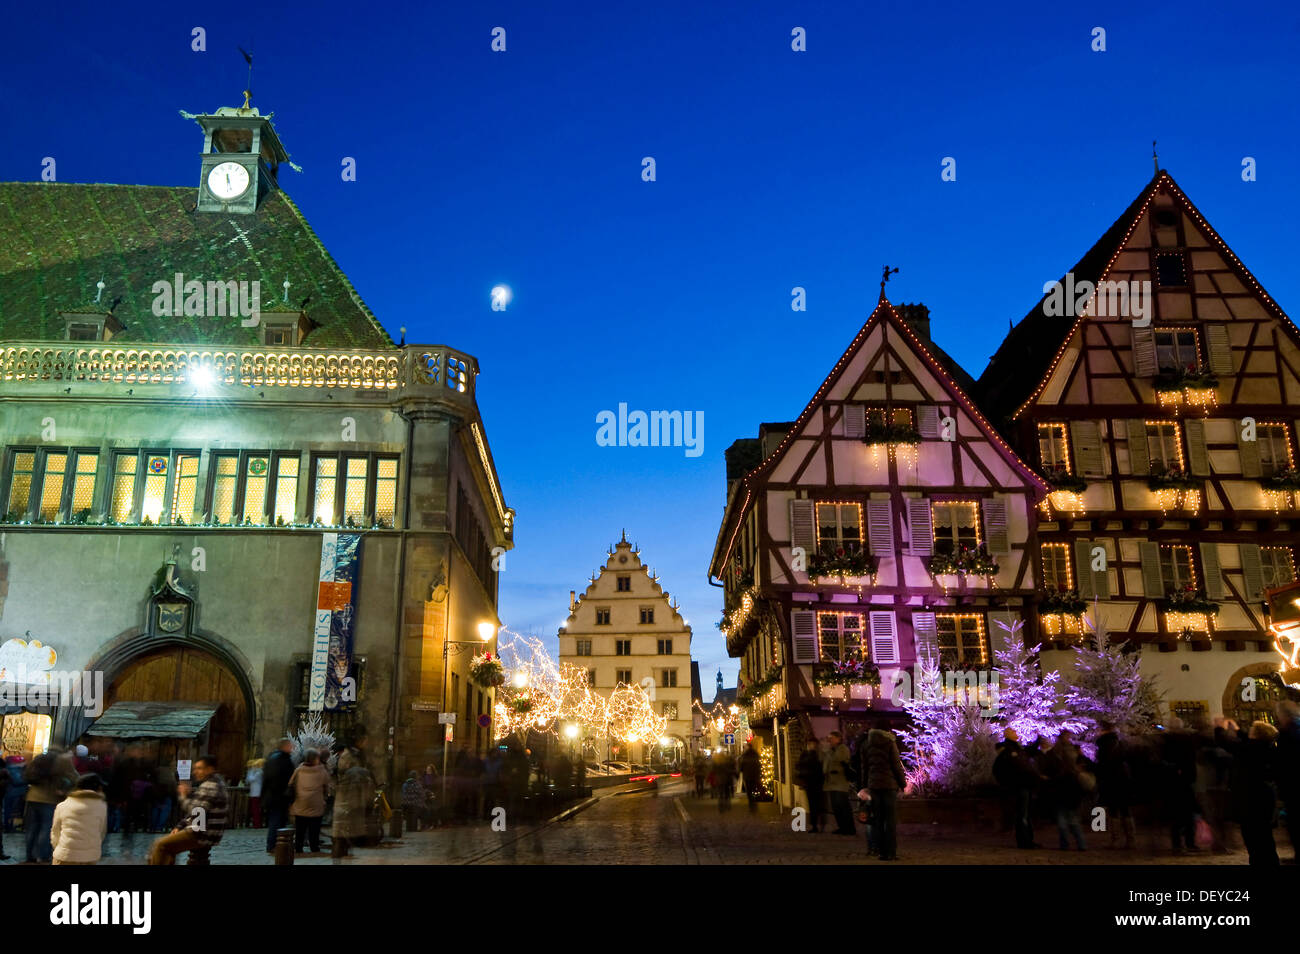 Quartier historique de Colmar avec décoration de Noël, Alsace, France, Europe Photo Stock